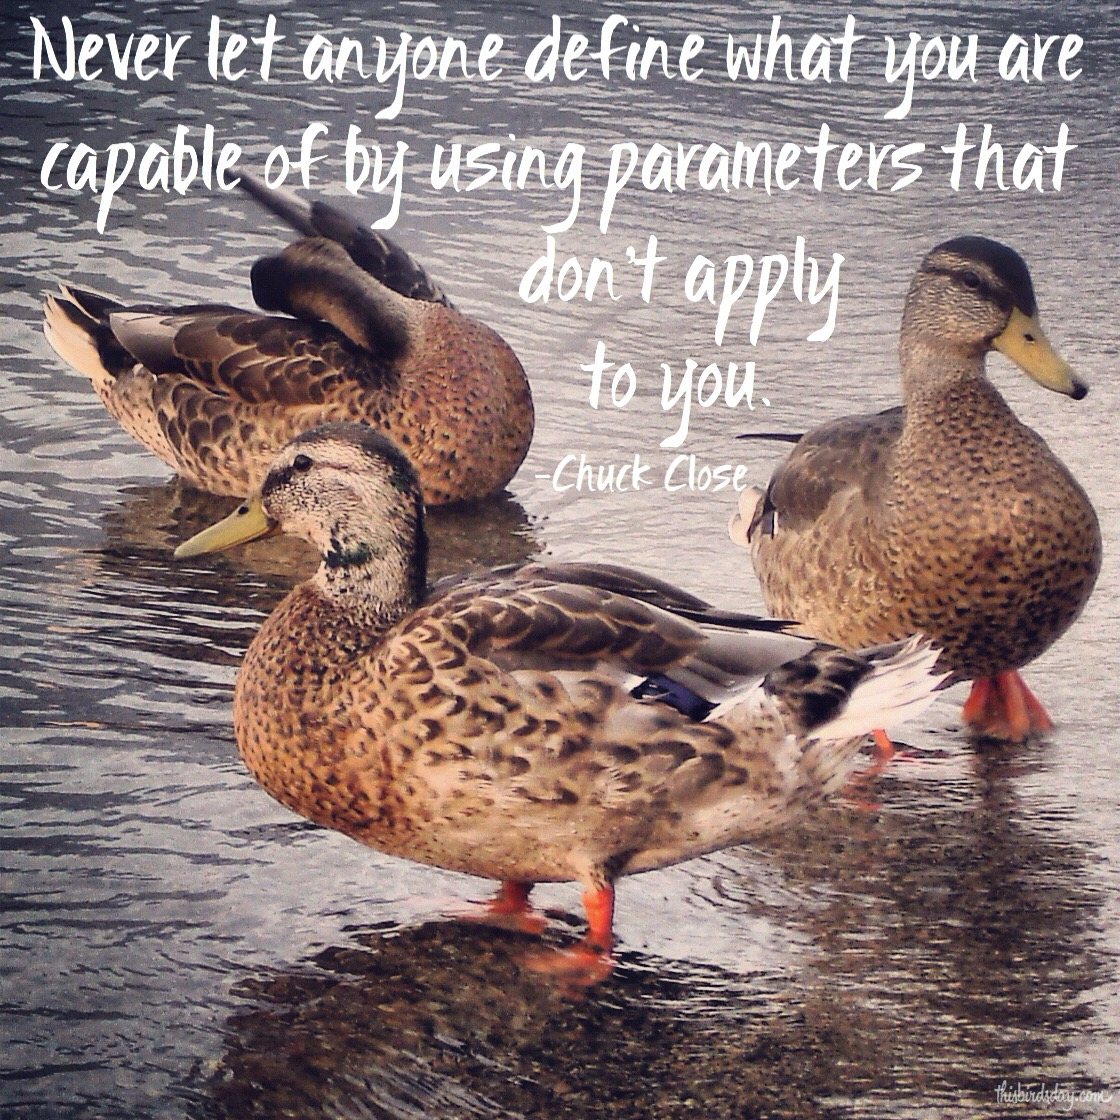 """""""Never let anyone define what you are capable of by using parameters that don't apply to you."""" Chuck Close photo copyright Sheri Landry"""